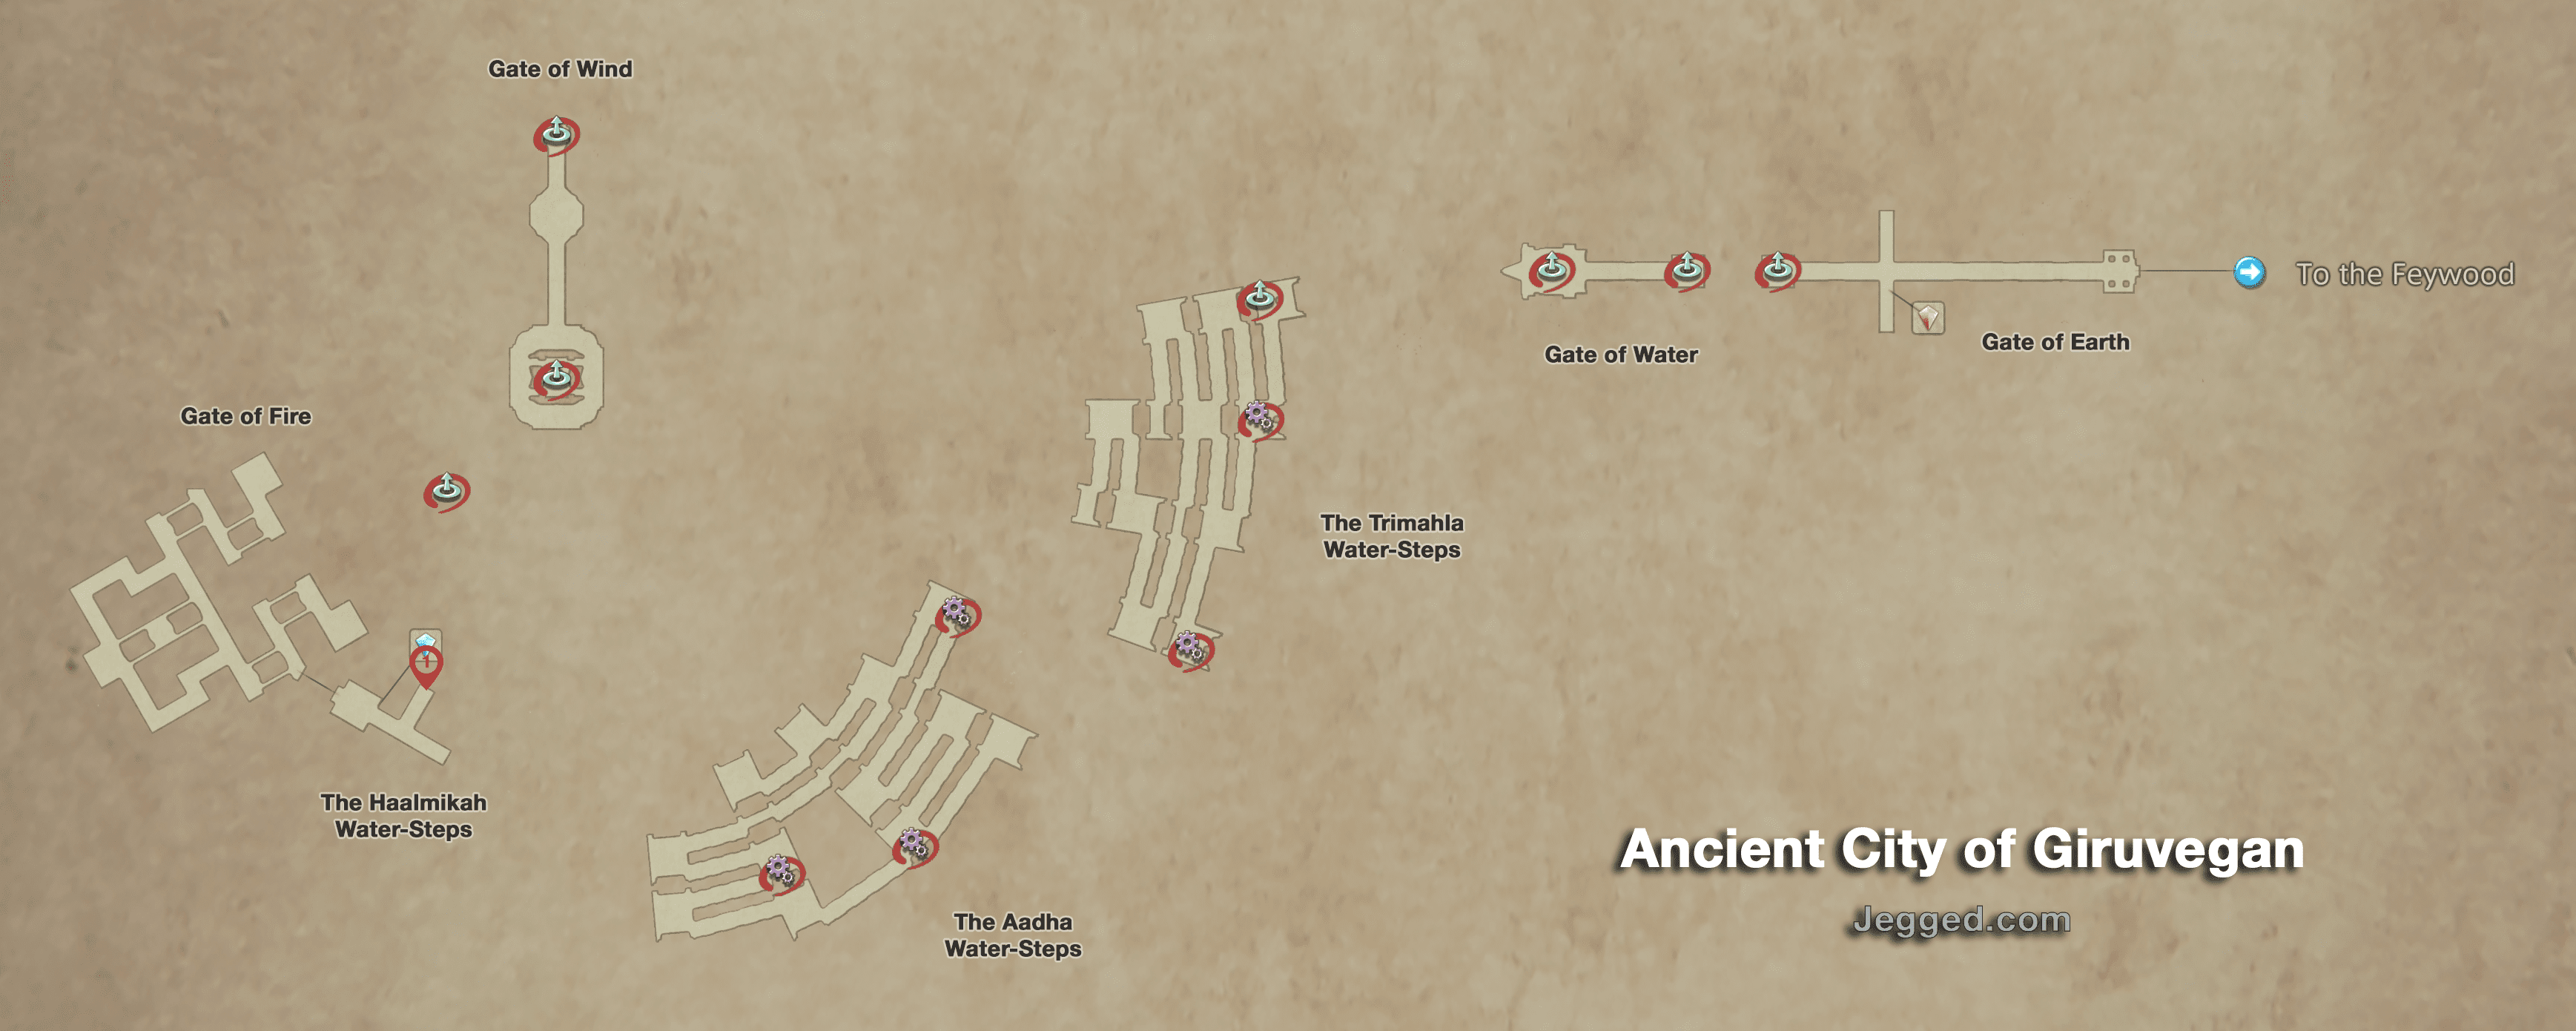 Map of the Ancient City of Giruvegan